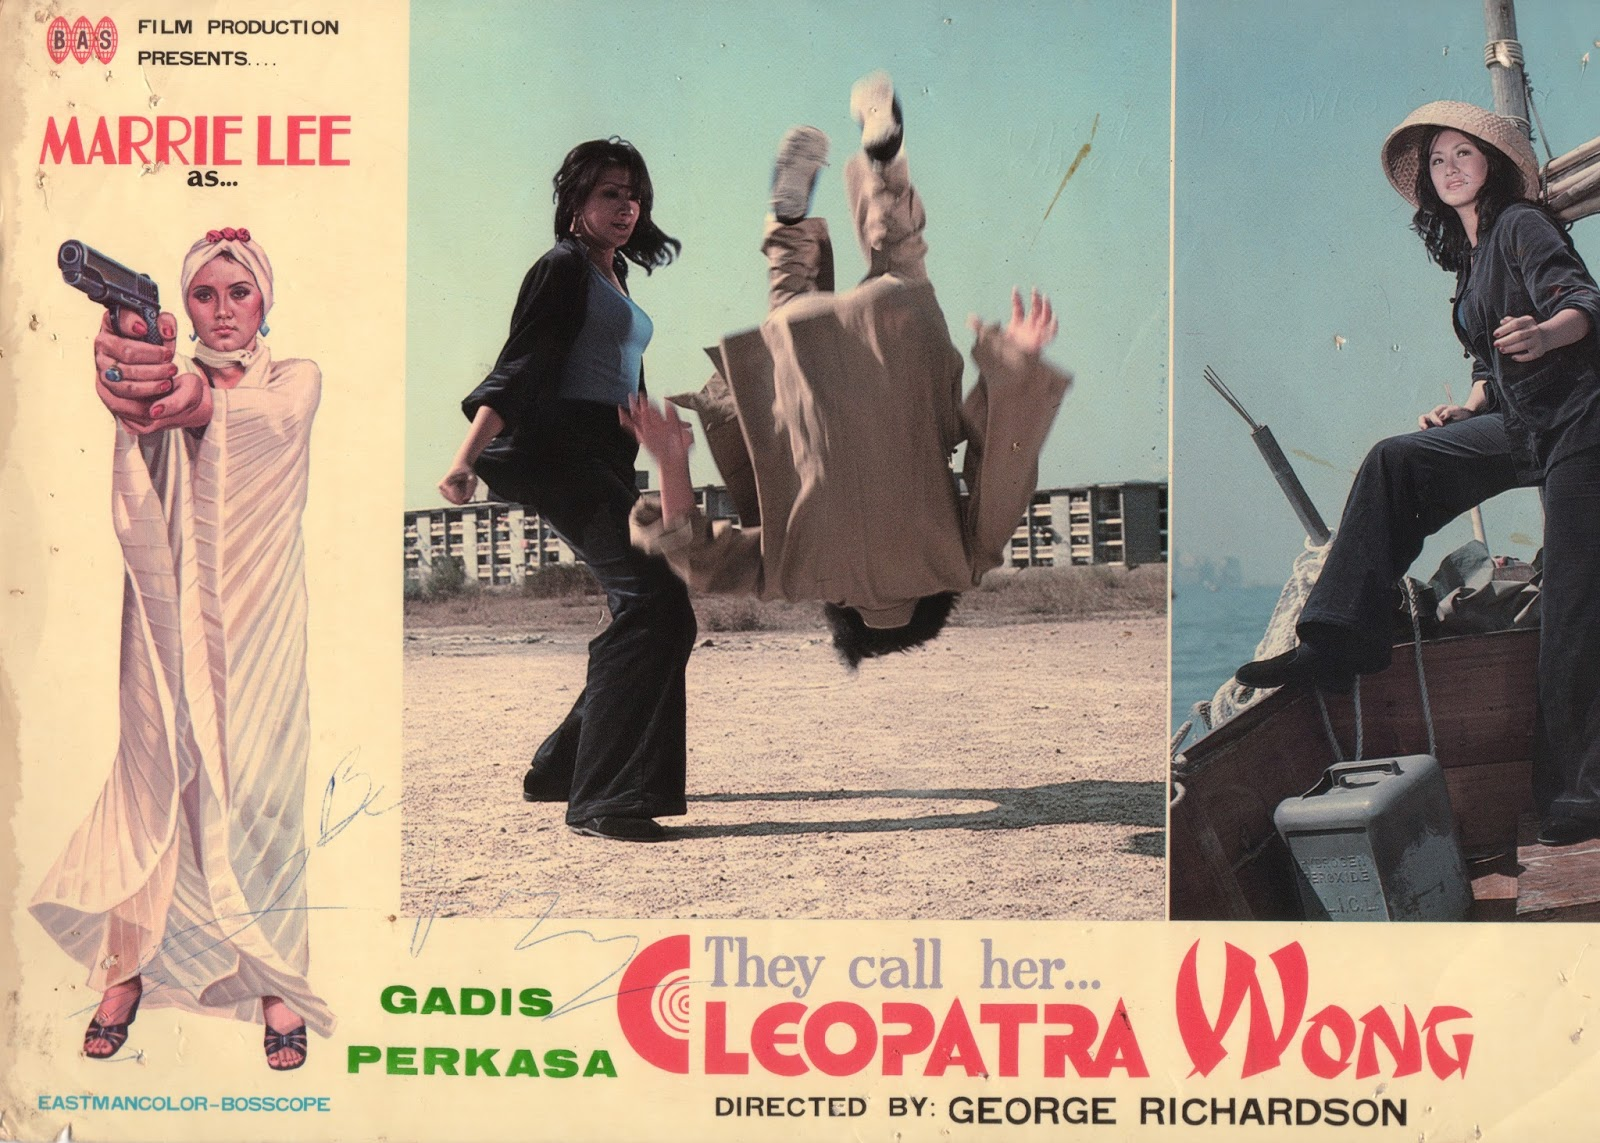 Cleopatra Wong, Singapore cinema in Shirkers